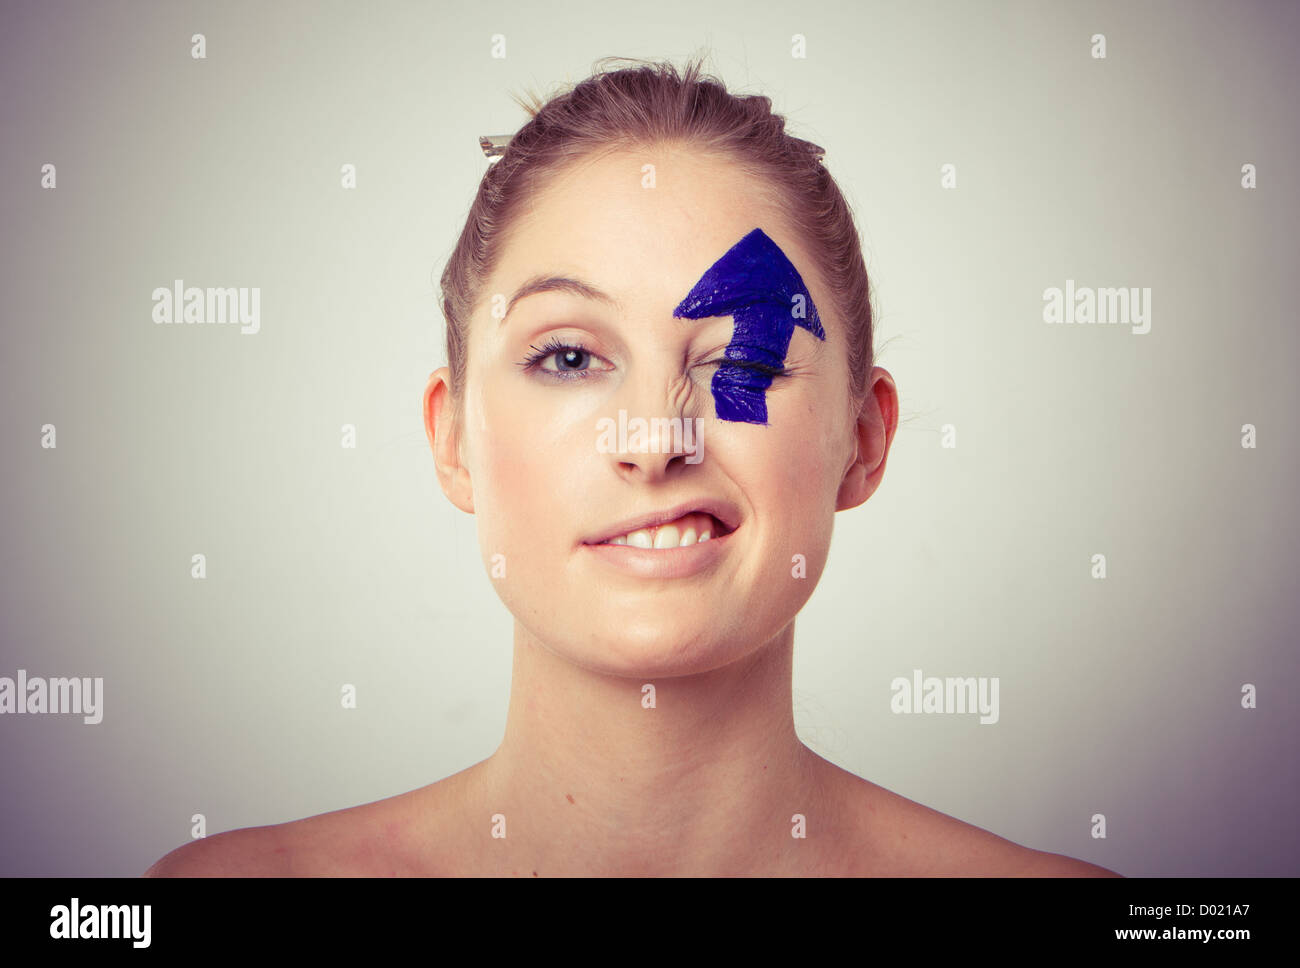 Portrait of smiling young blond haired woman with upward pointing arrow painted over eye, white studio background. - Stock Image